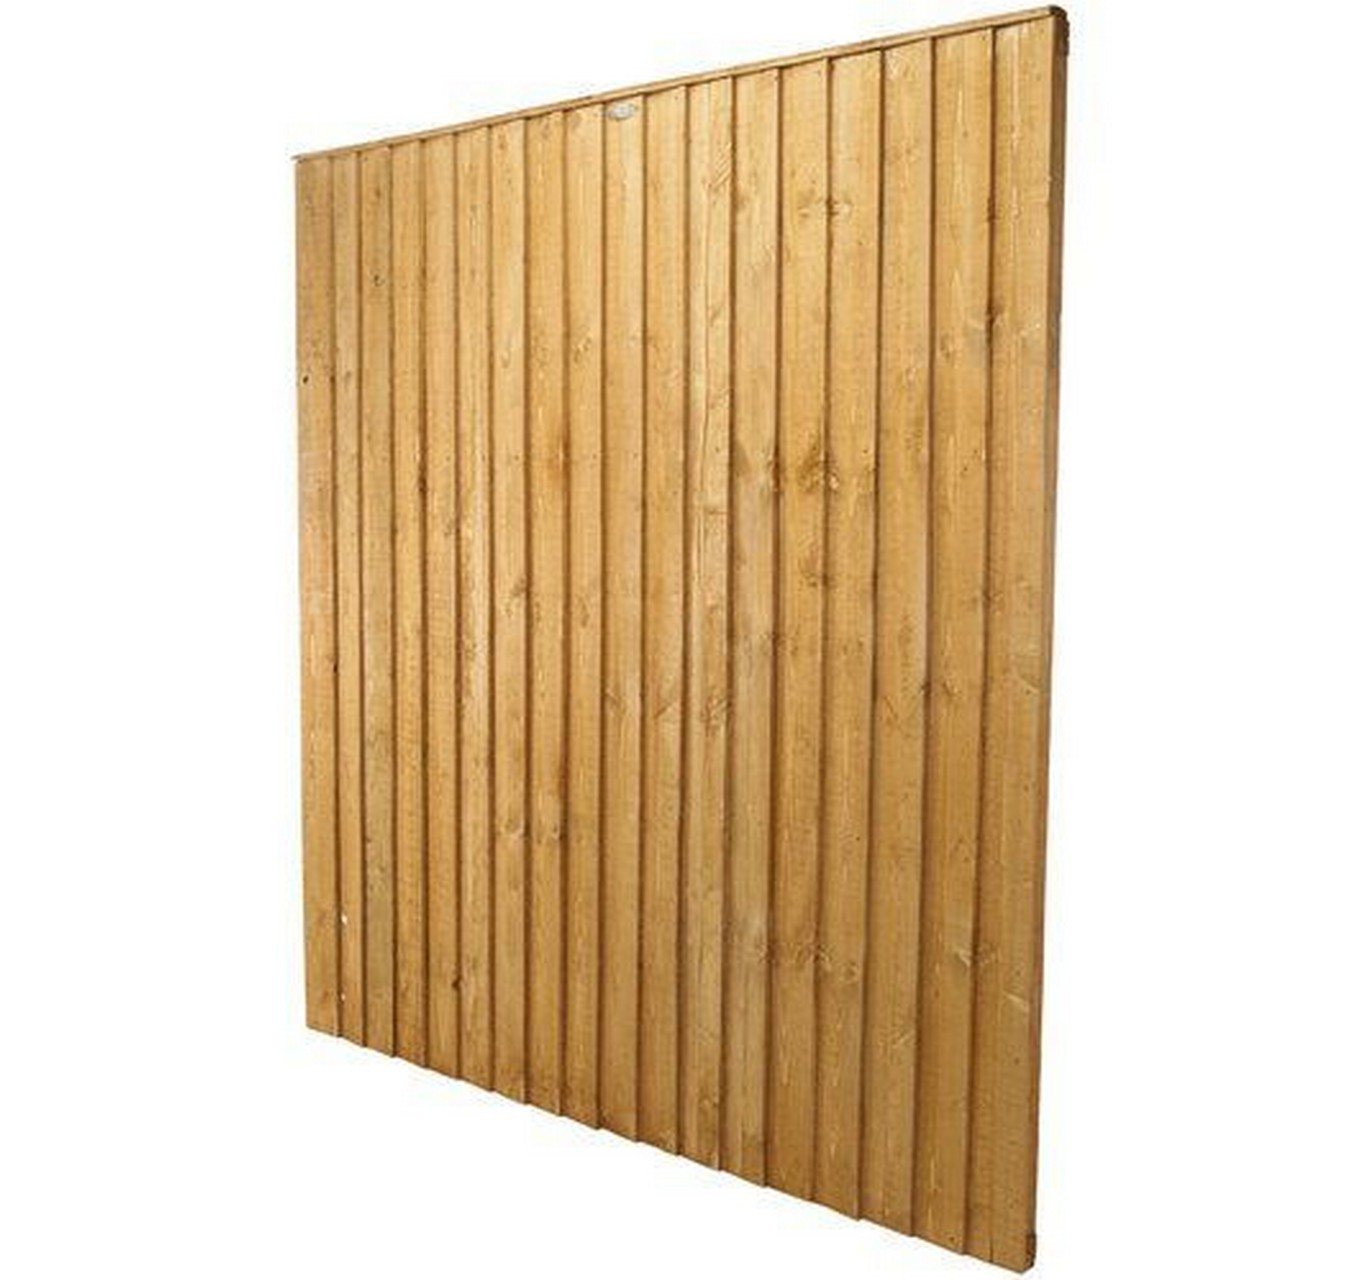 6x4ft Feather Edge Fence Panel